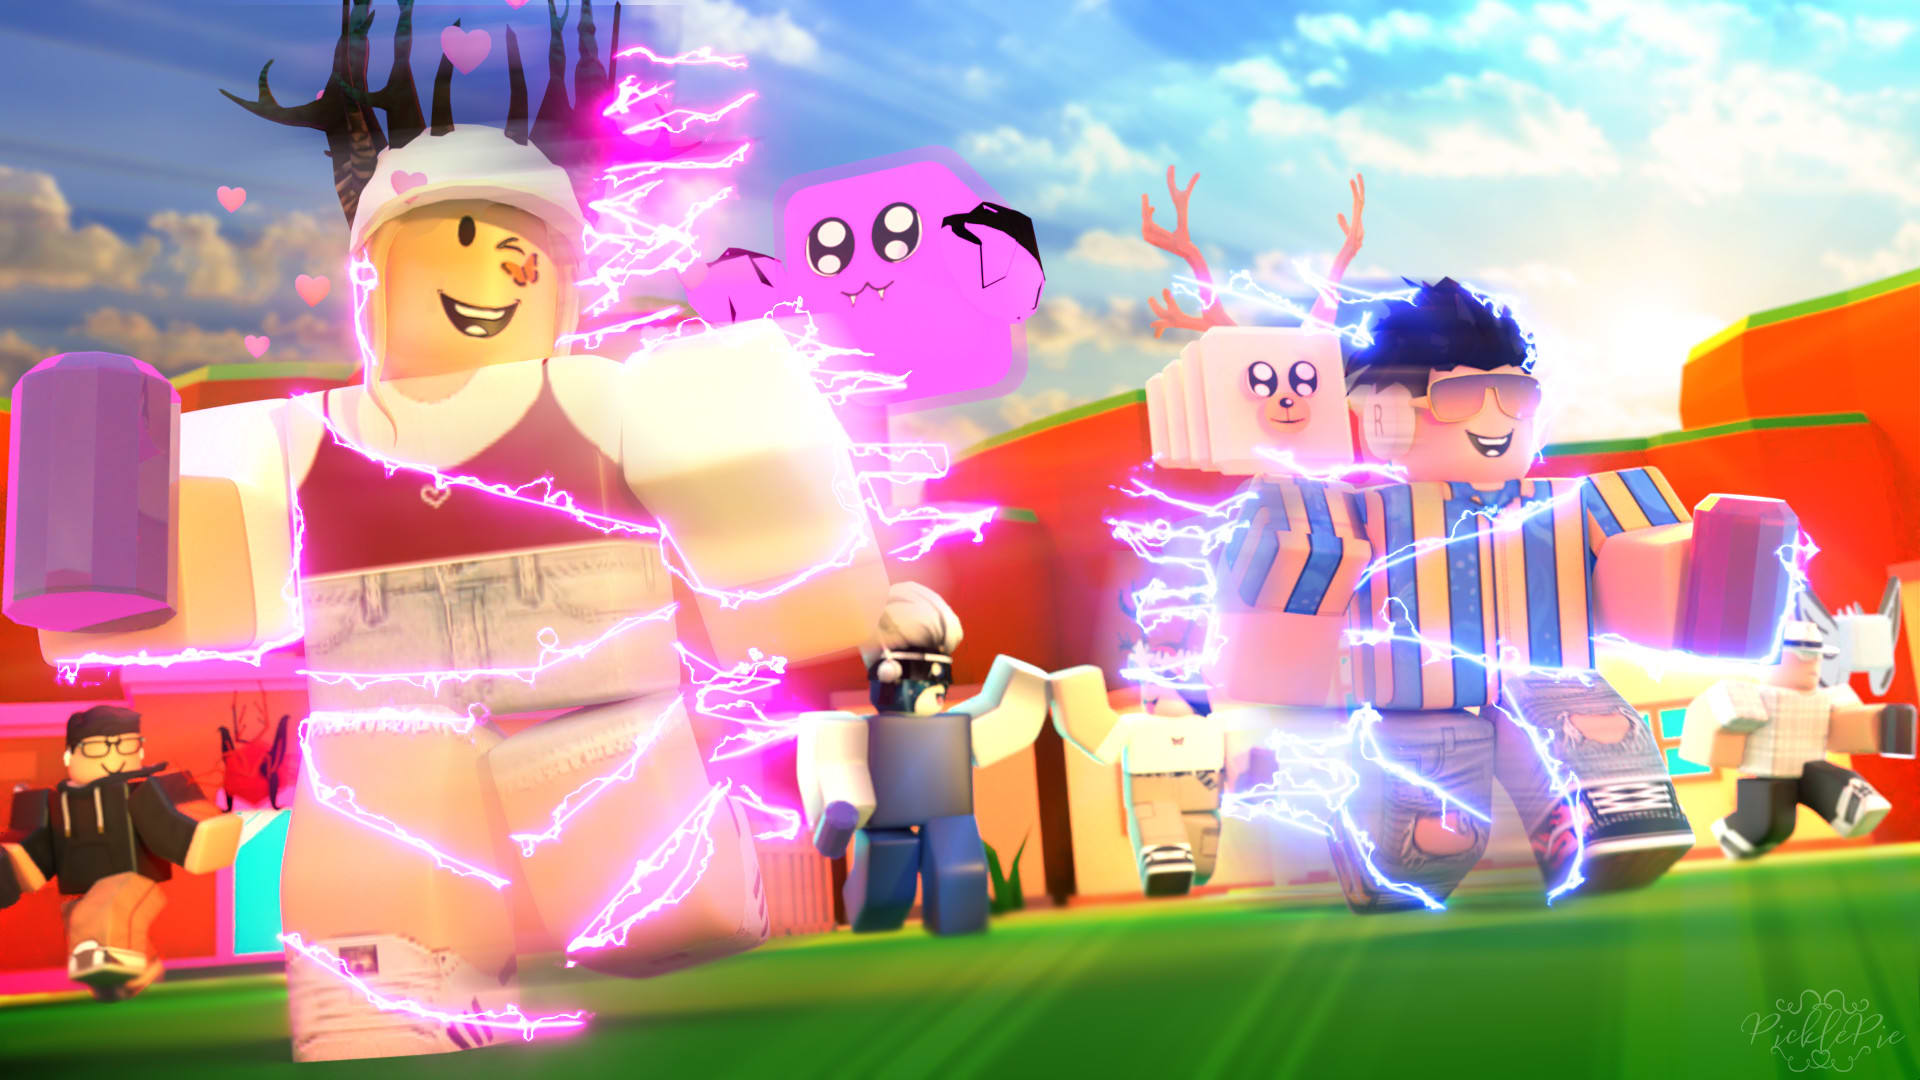 Faceless Summer Aesthetic Roblox Girl Gfx Make You A High Quality Roblox Gfx By Picklepieyt